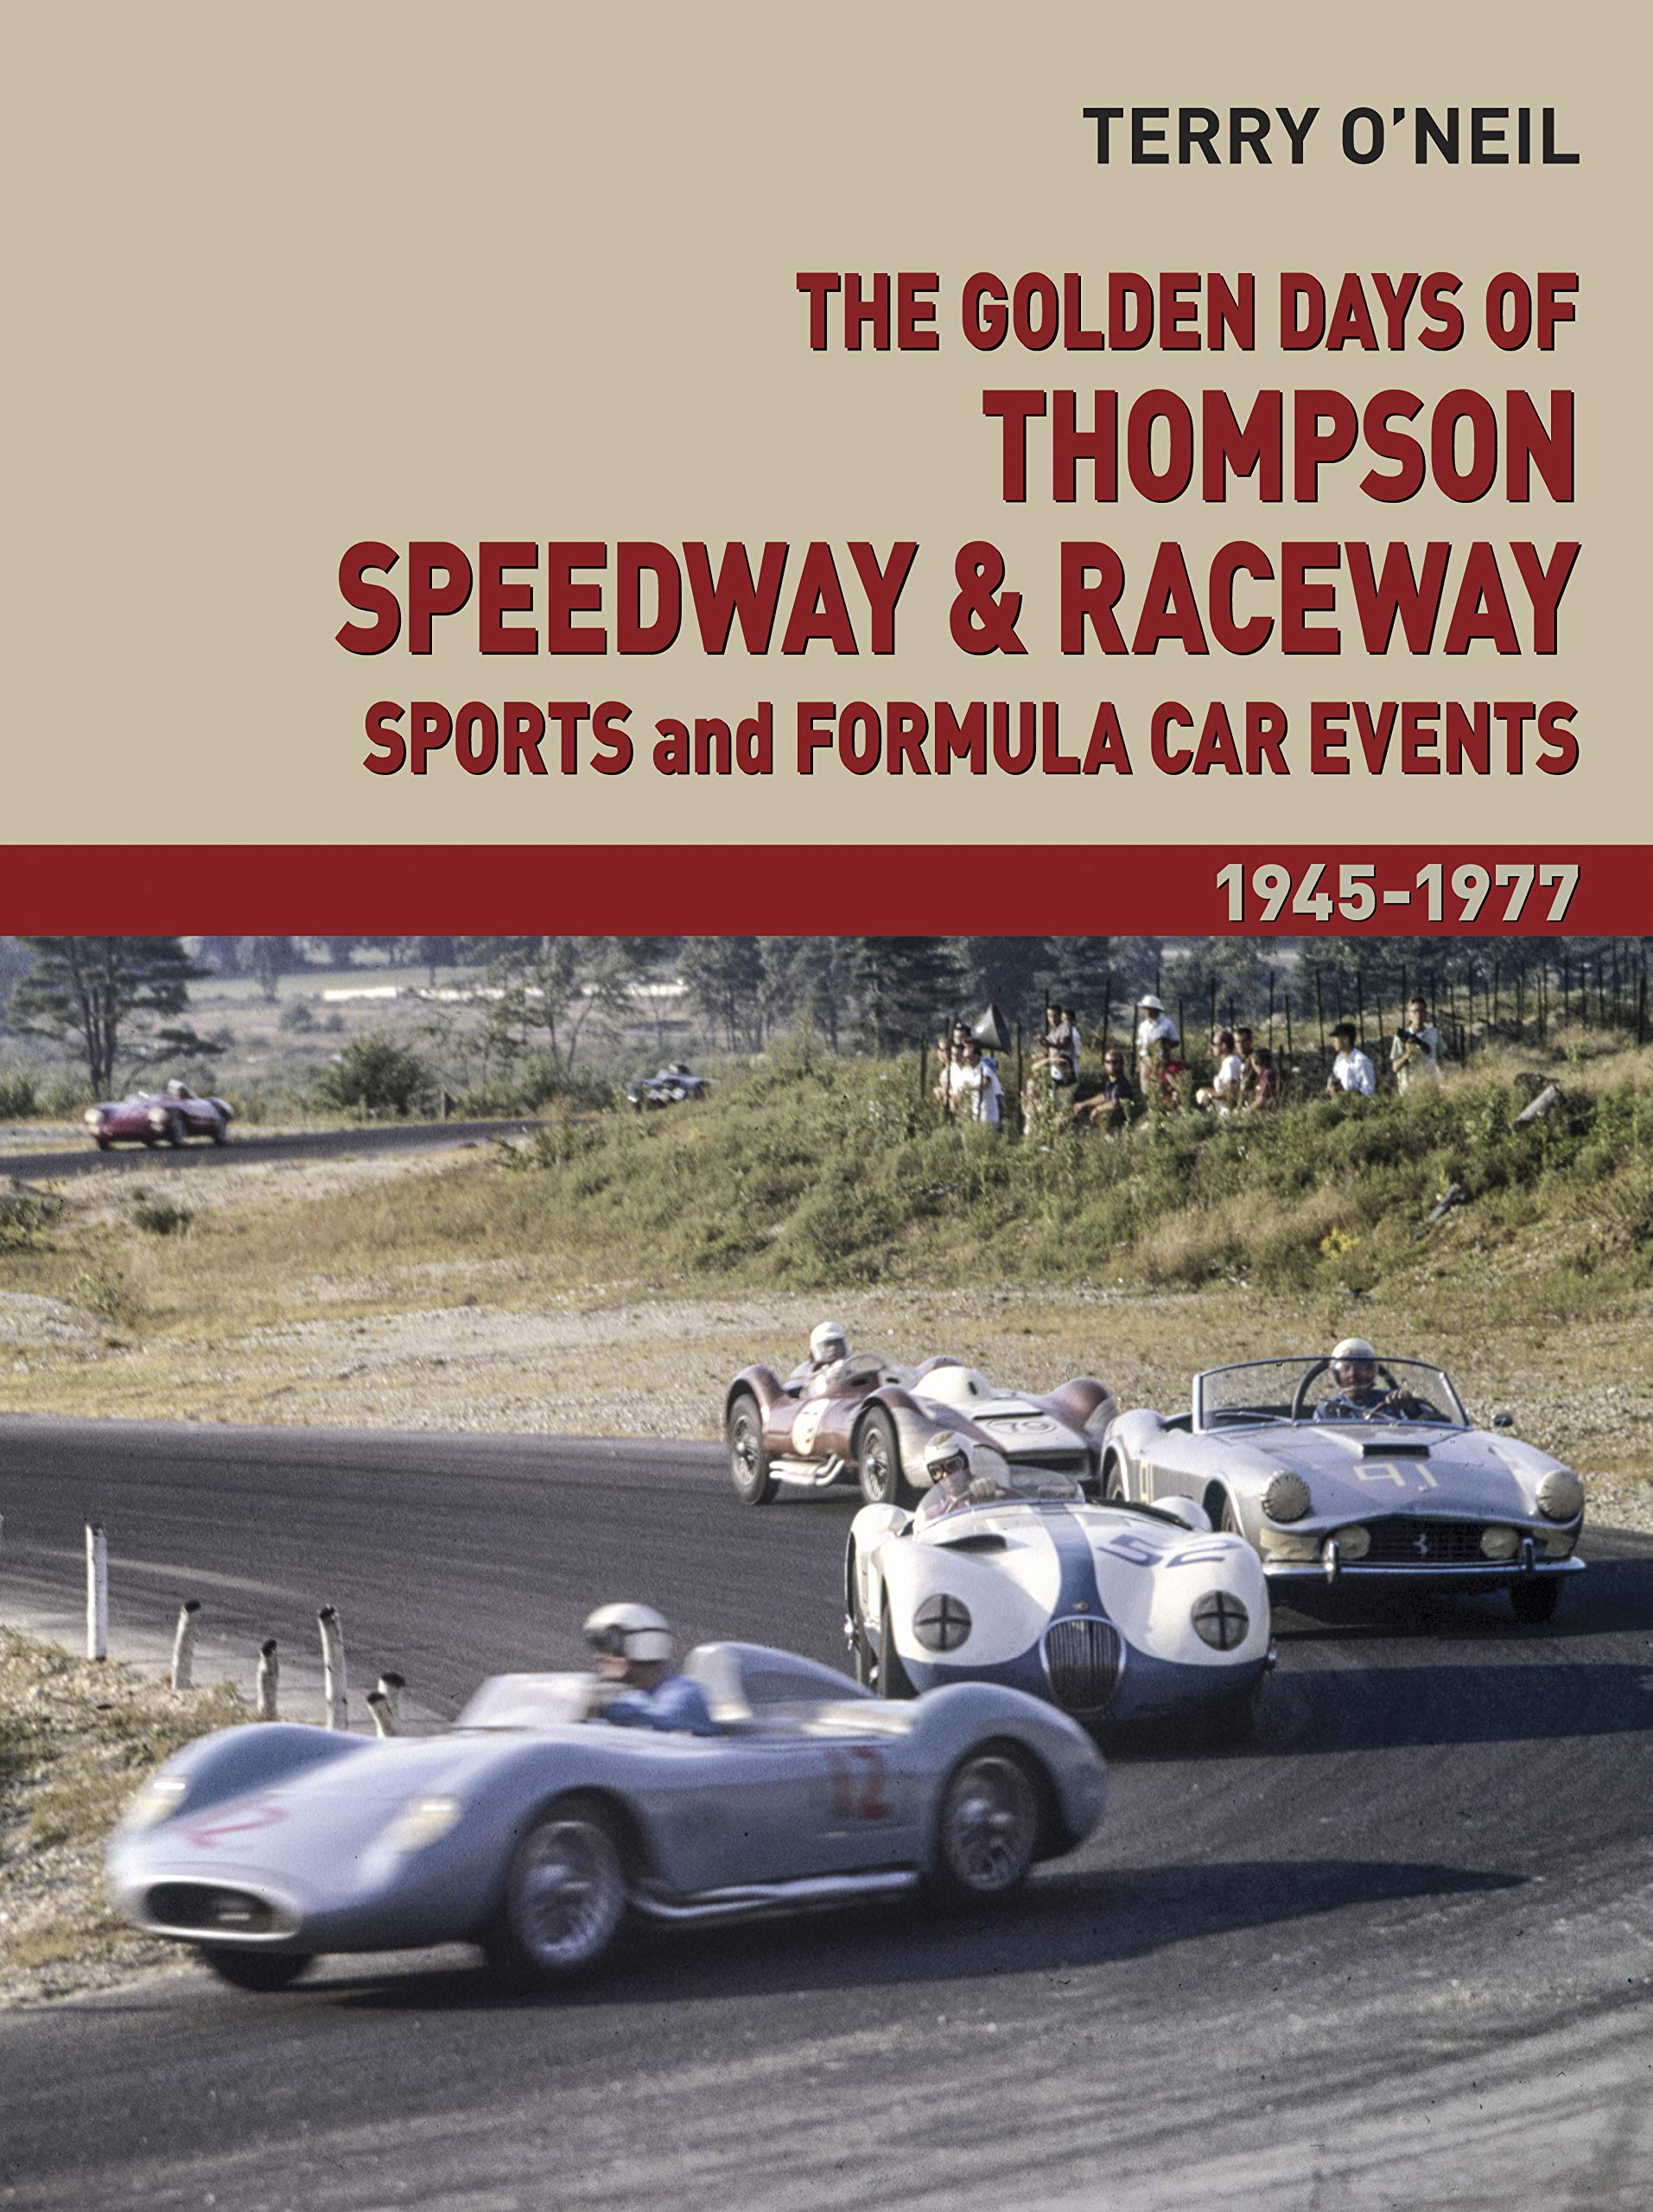 Image OfThe Golden Days Of Thompson Speedway & Raceway: Sports And Formula Car Events 1945-1977